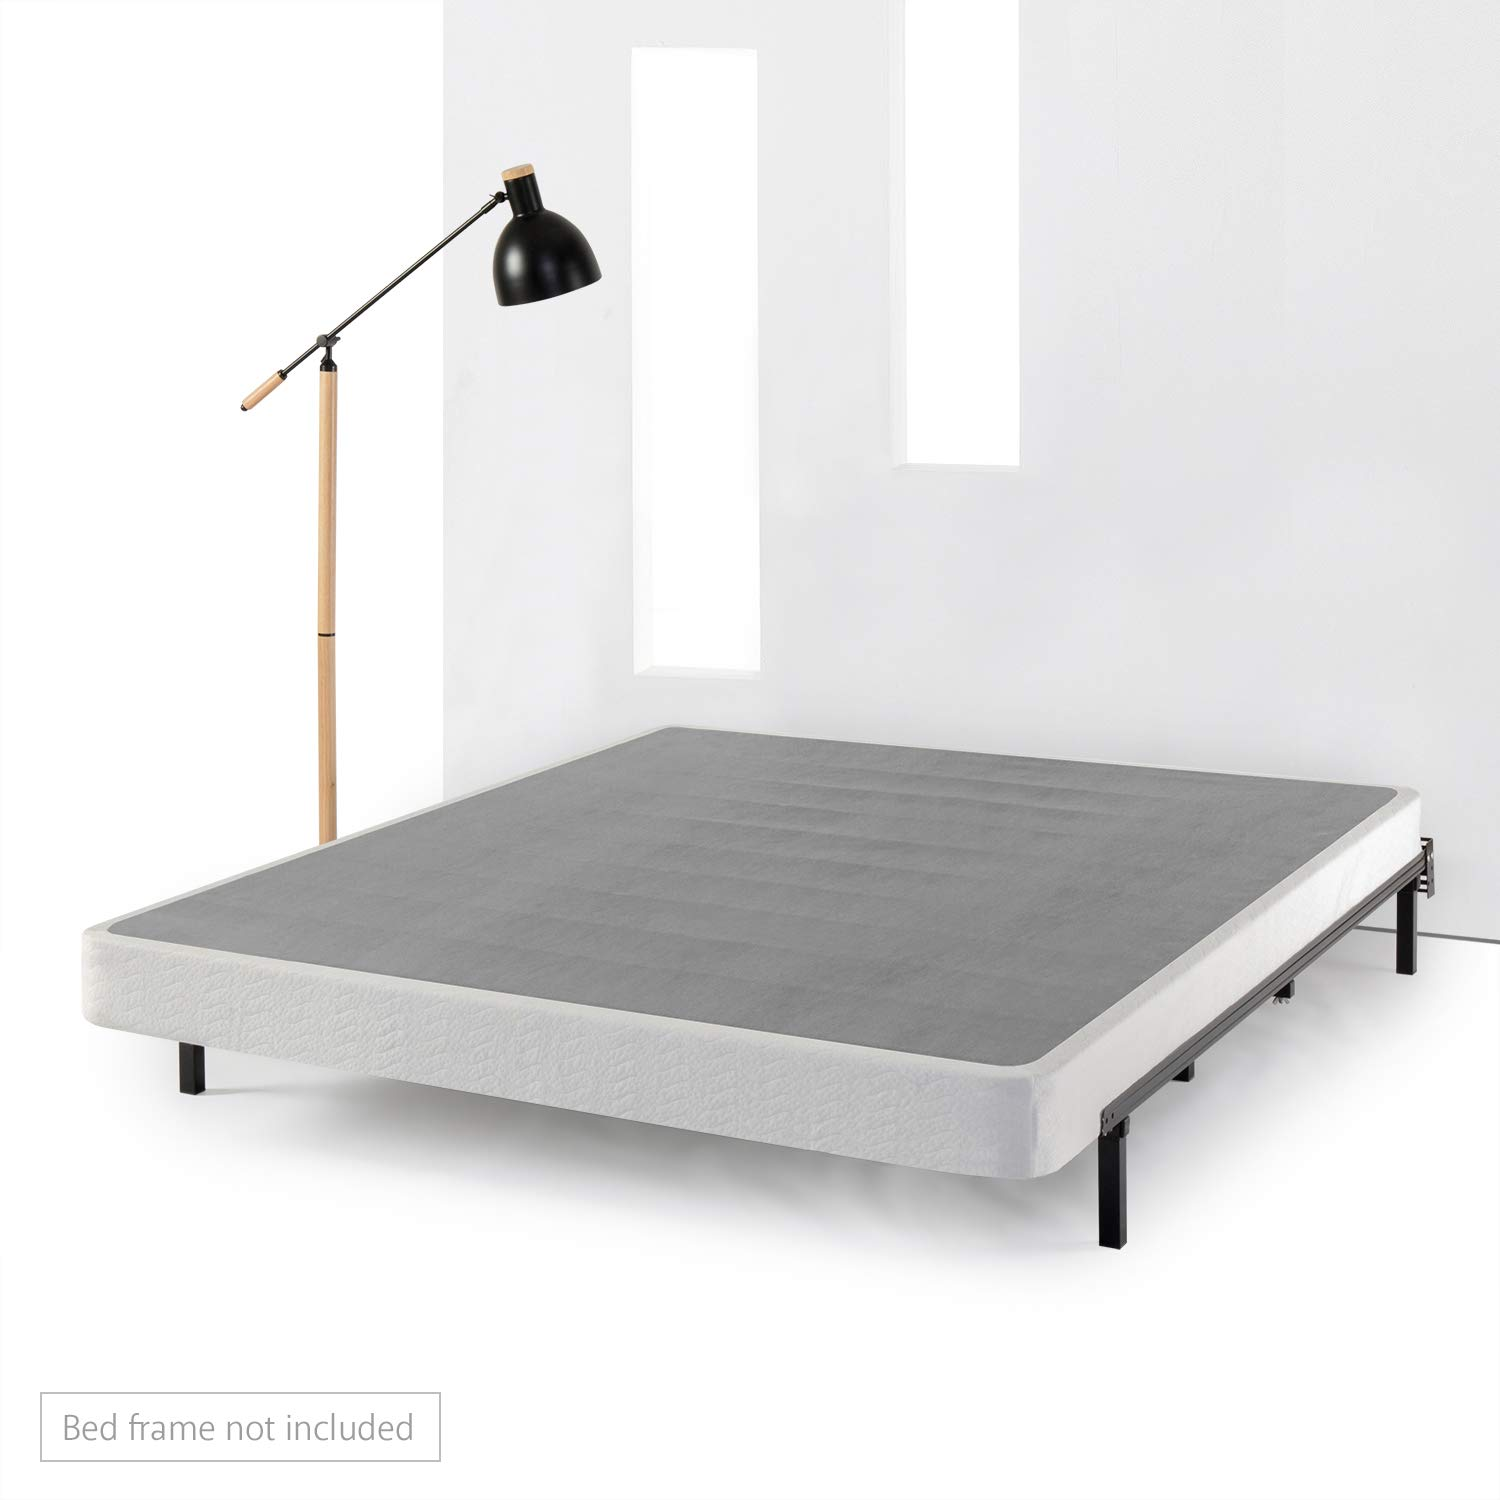 Best Price Mattress Box Spring/Mattress Foundation/Easy Assembly - 5 Inch, Full, Gray/White by Best Price Mattress